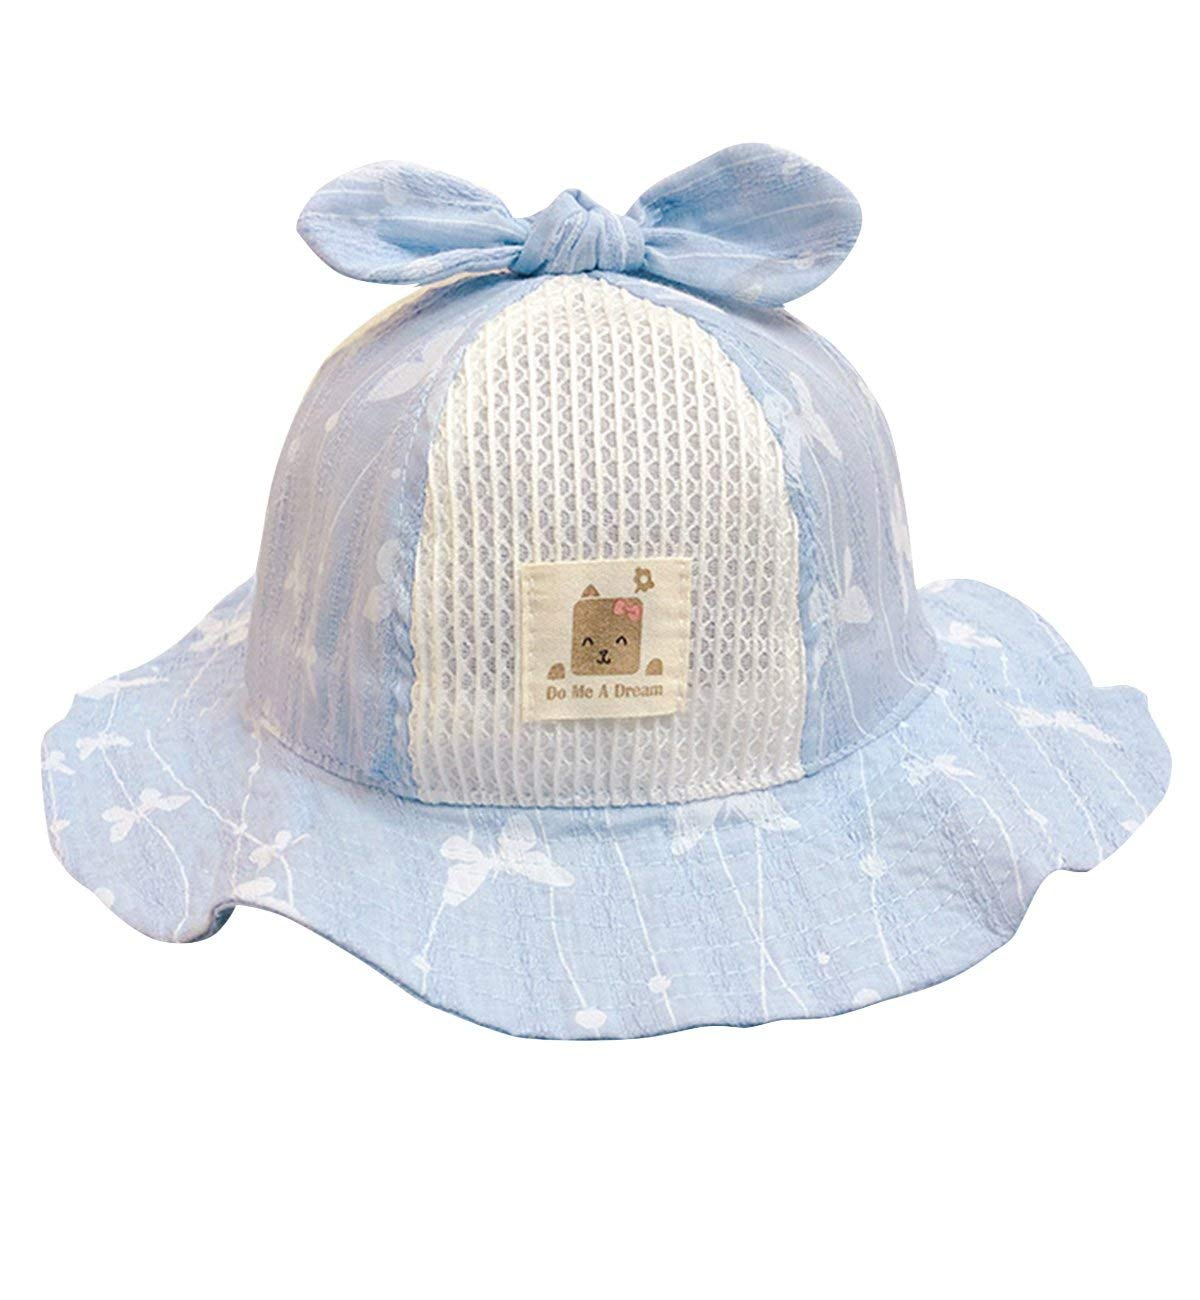 Get Quotations · Sumolux Toddlers Baby Sun Hat Girls Boys Cute Floral  Bowknot Mesh Large Brimmed Cotton Sun Protection ccd36e50c0f2